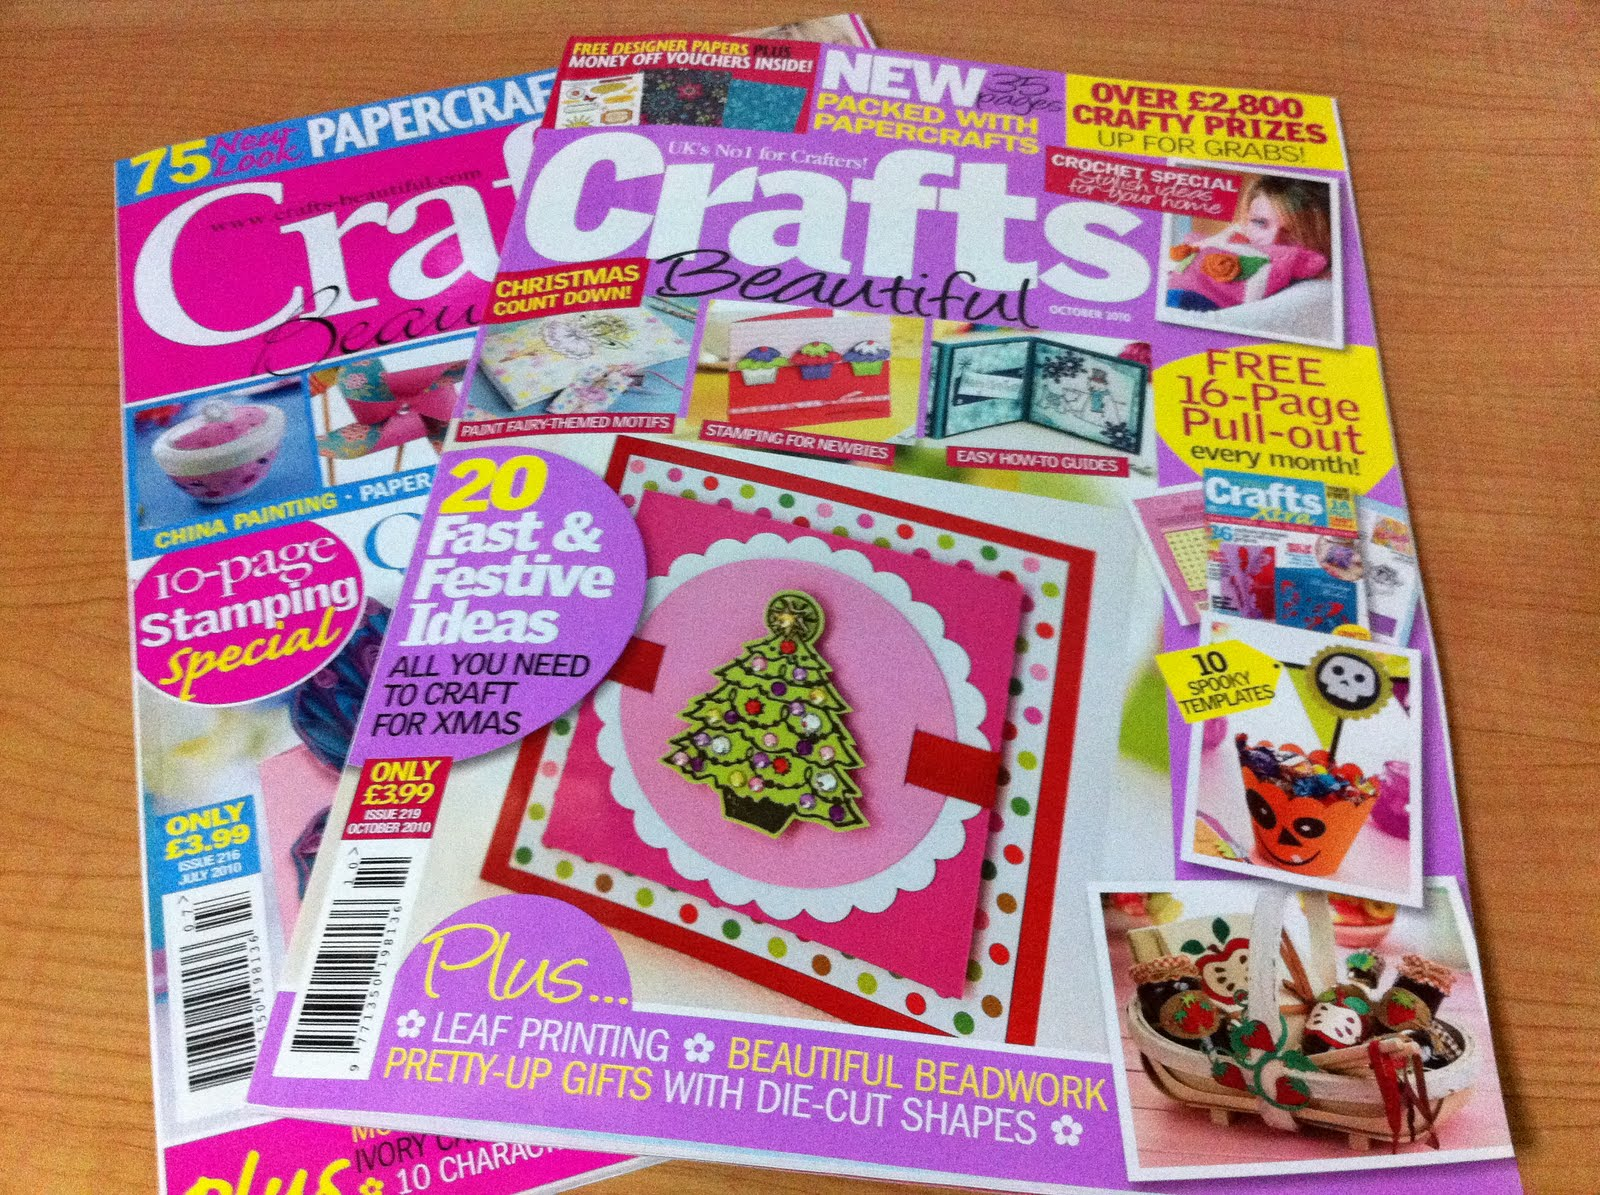 How to scrapbook magazines - The Magazines Are 1 3 Issues Of Craft Beautiful 2 3 Issues Of Scrapbook Creations 3 1 Issue Of Memory Makers 4 1 Issue Of Holiday Cards